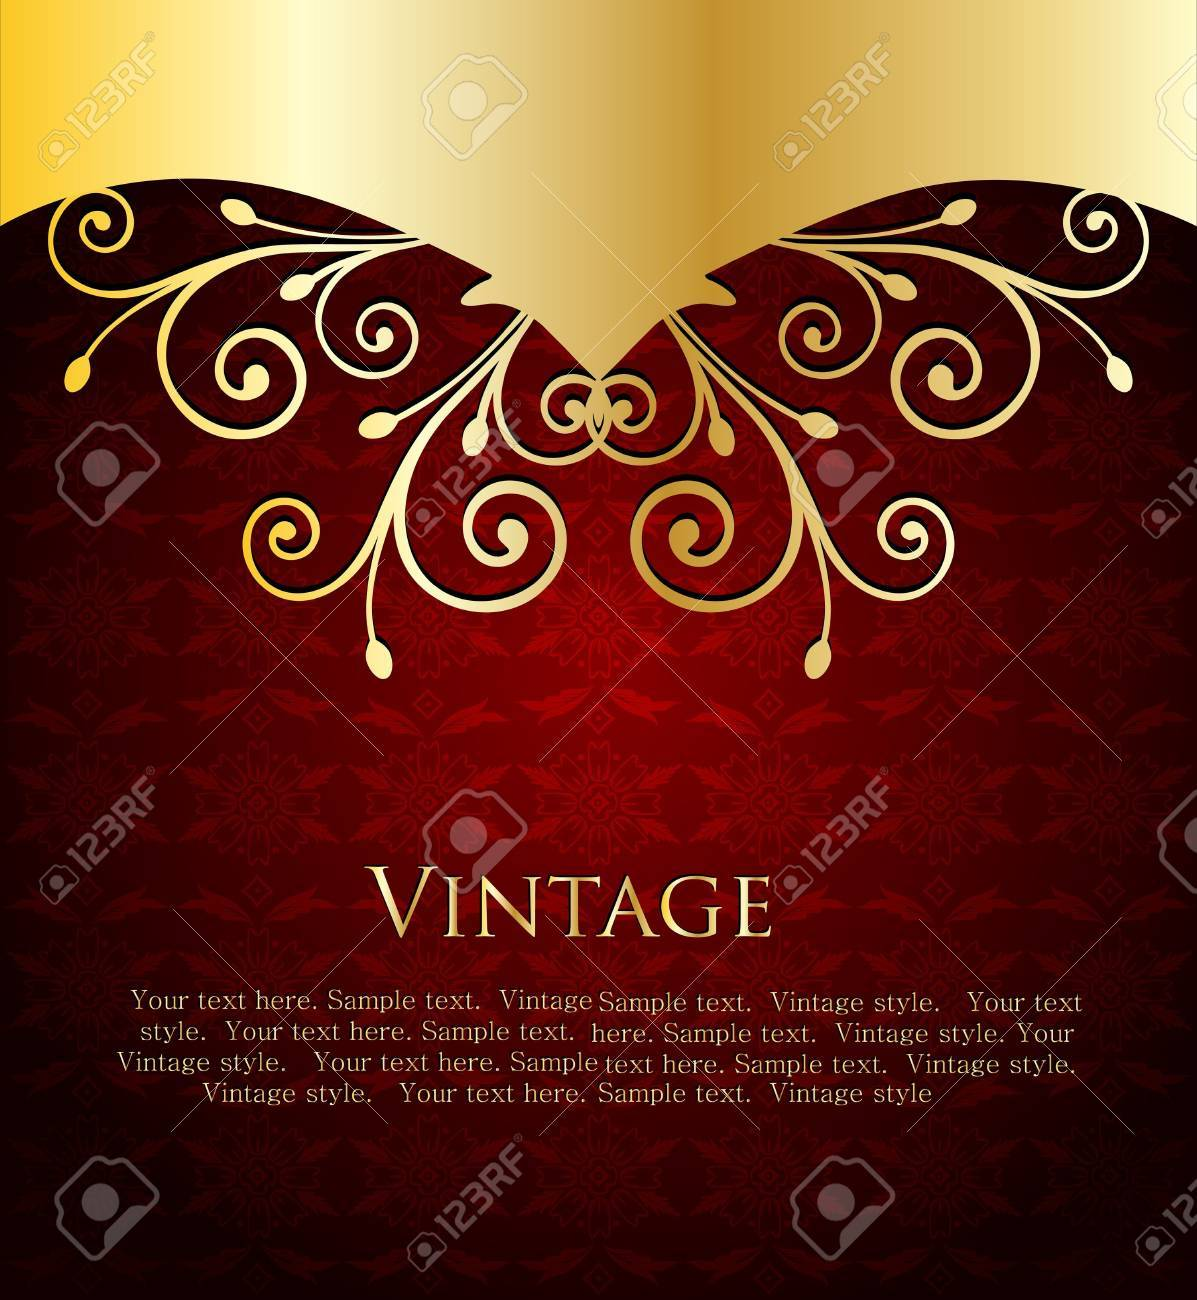 Red Label Template Stock Vector - 15316089